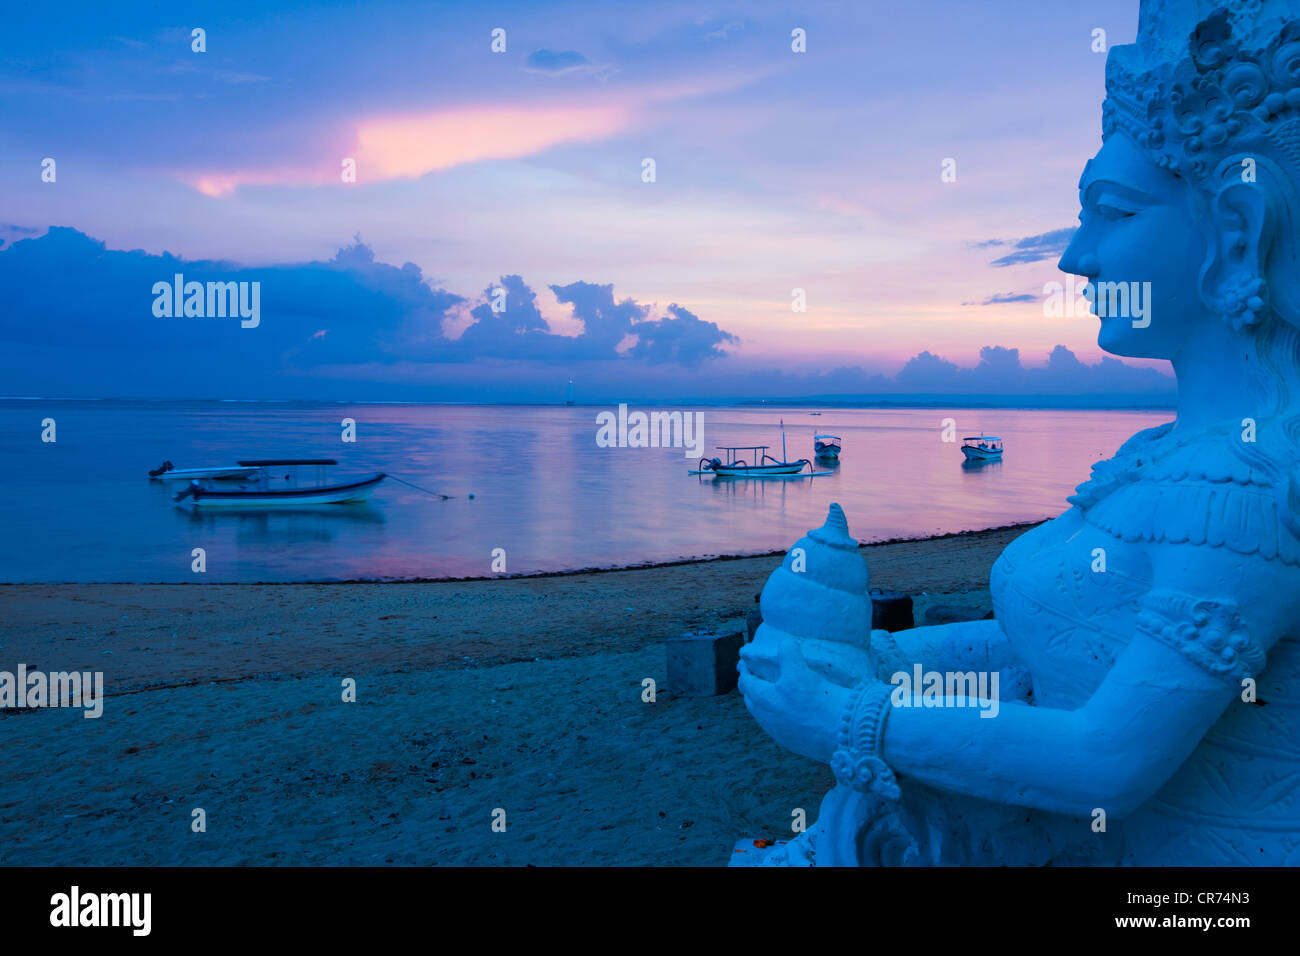 Indonesia, Bali, Sanur, Statue with sea in background at dusk Stock Photo